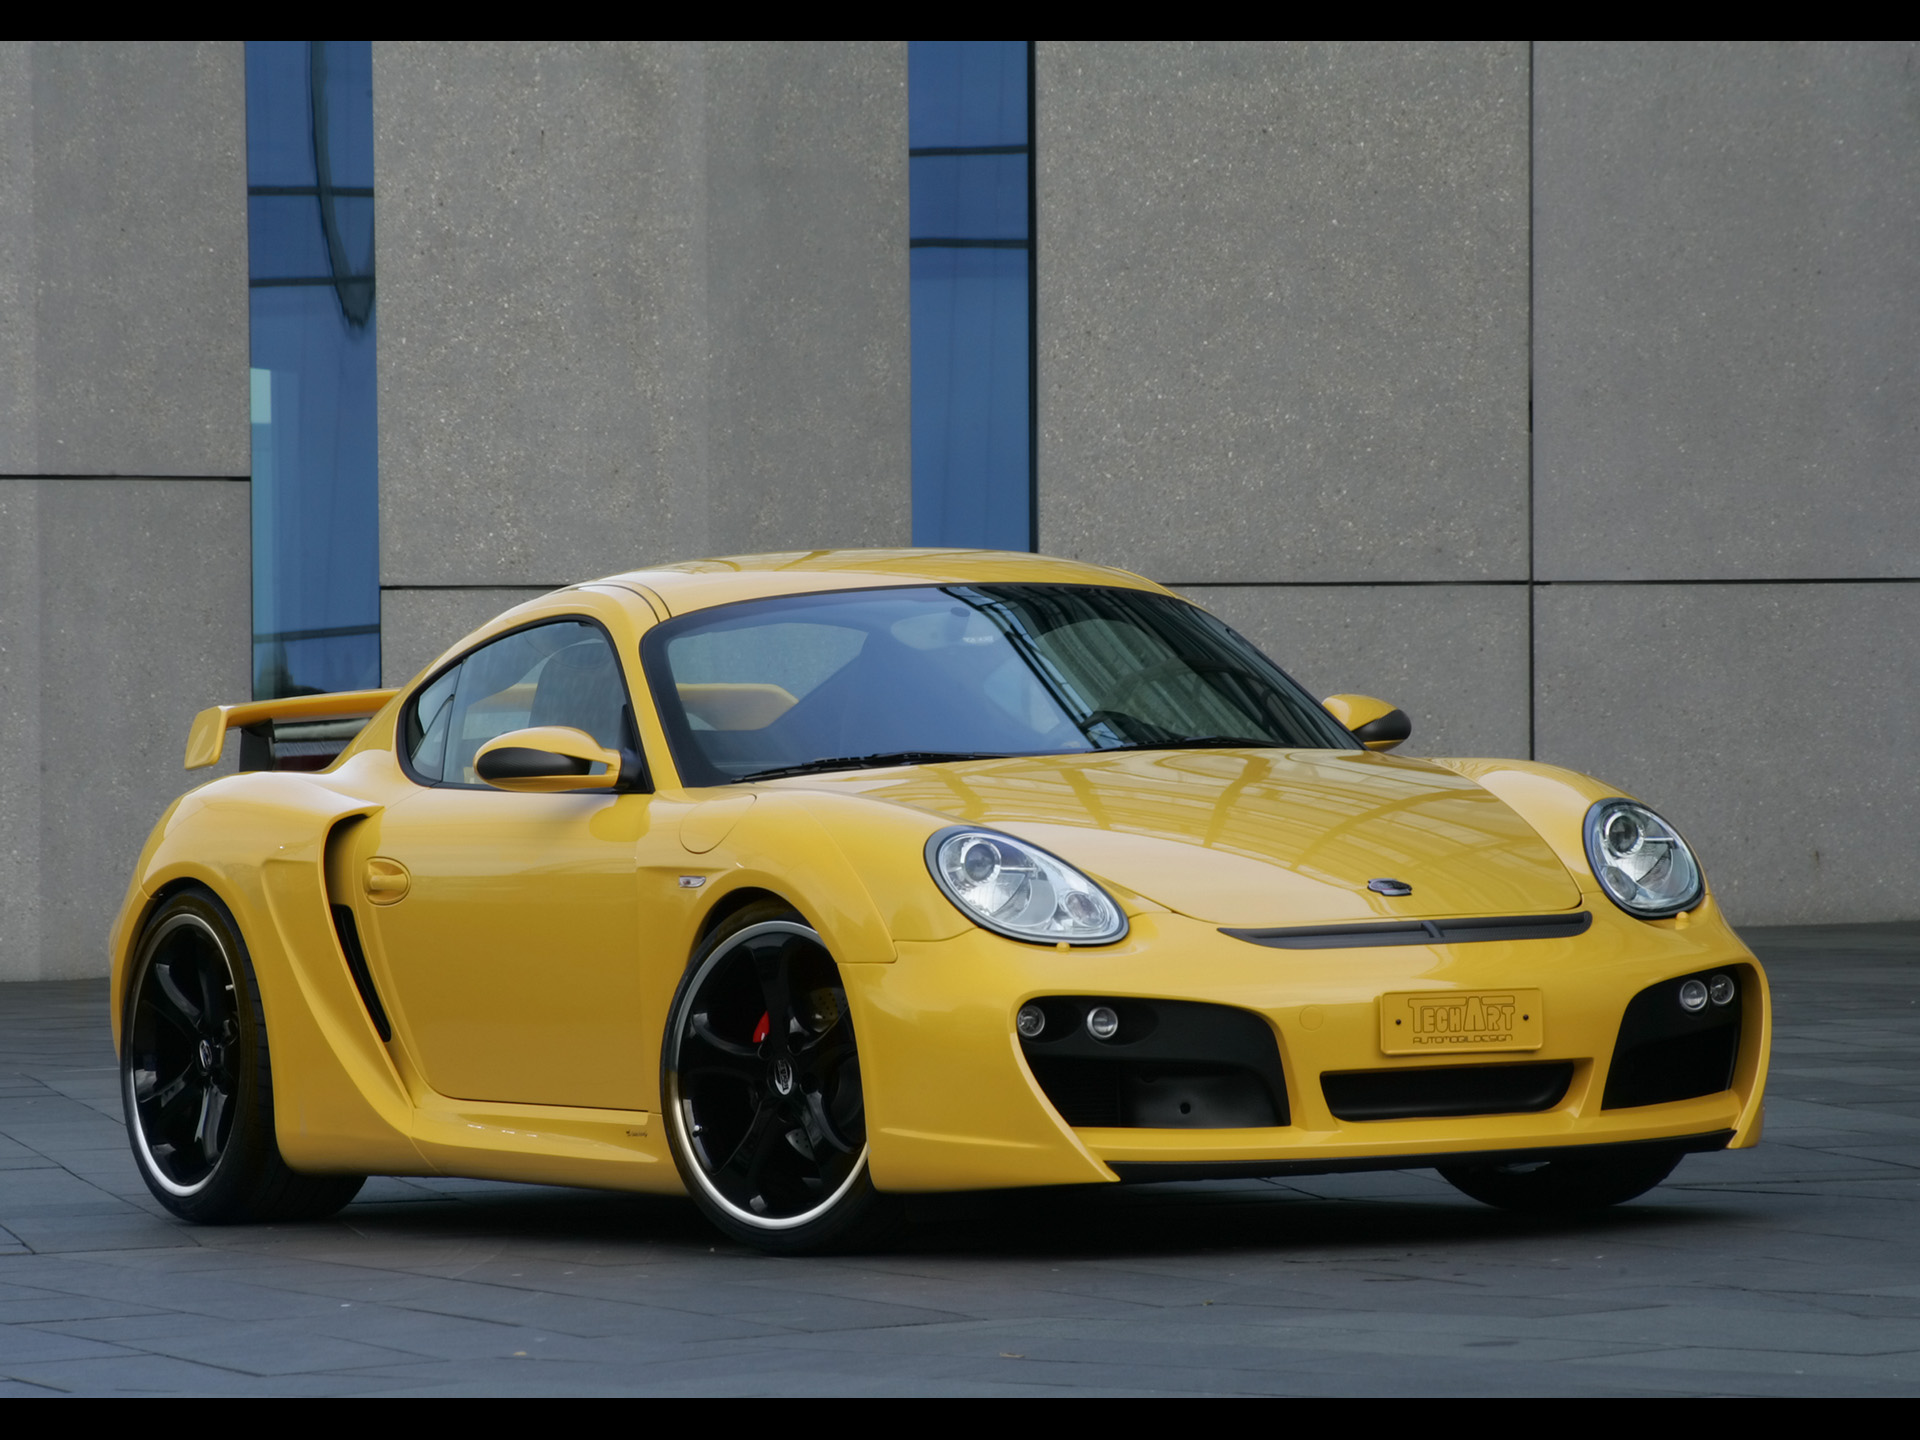 techart porsche cayman s photos photogallery with 13 pics. Black Bedroom Furniture Sets. Home Design Ideas